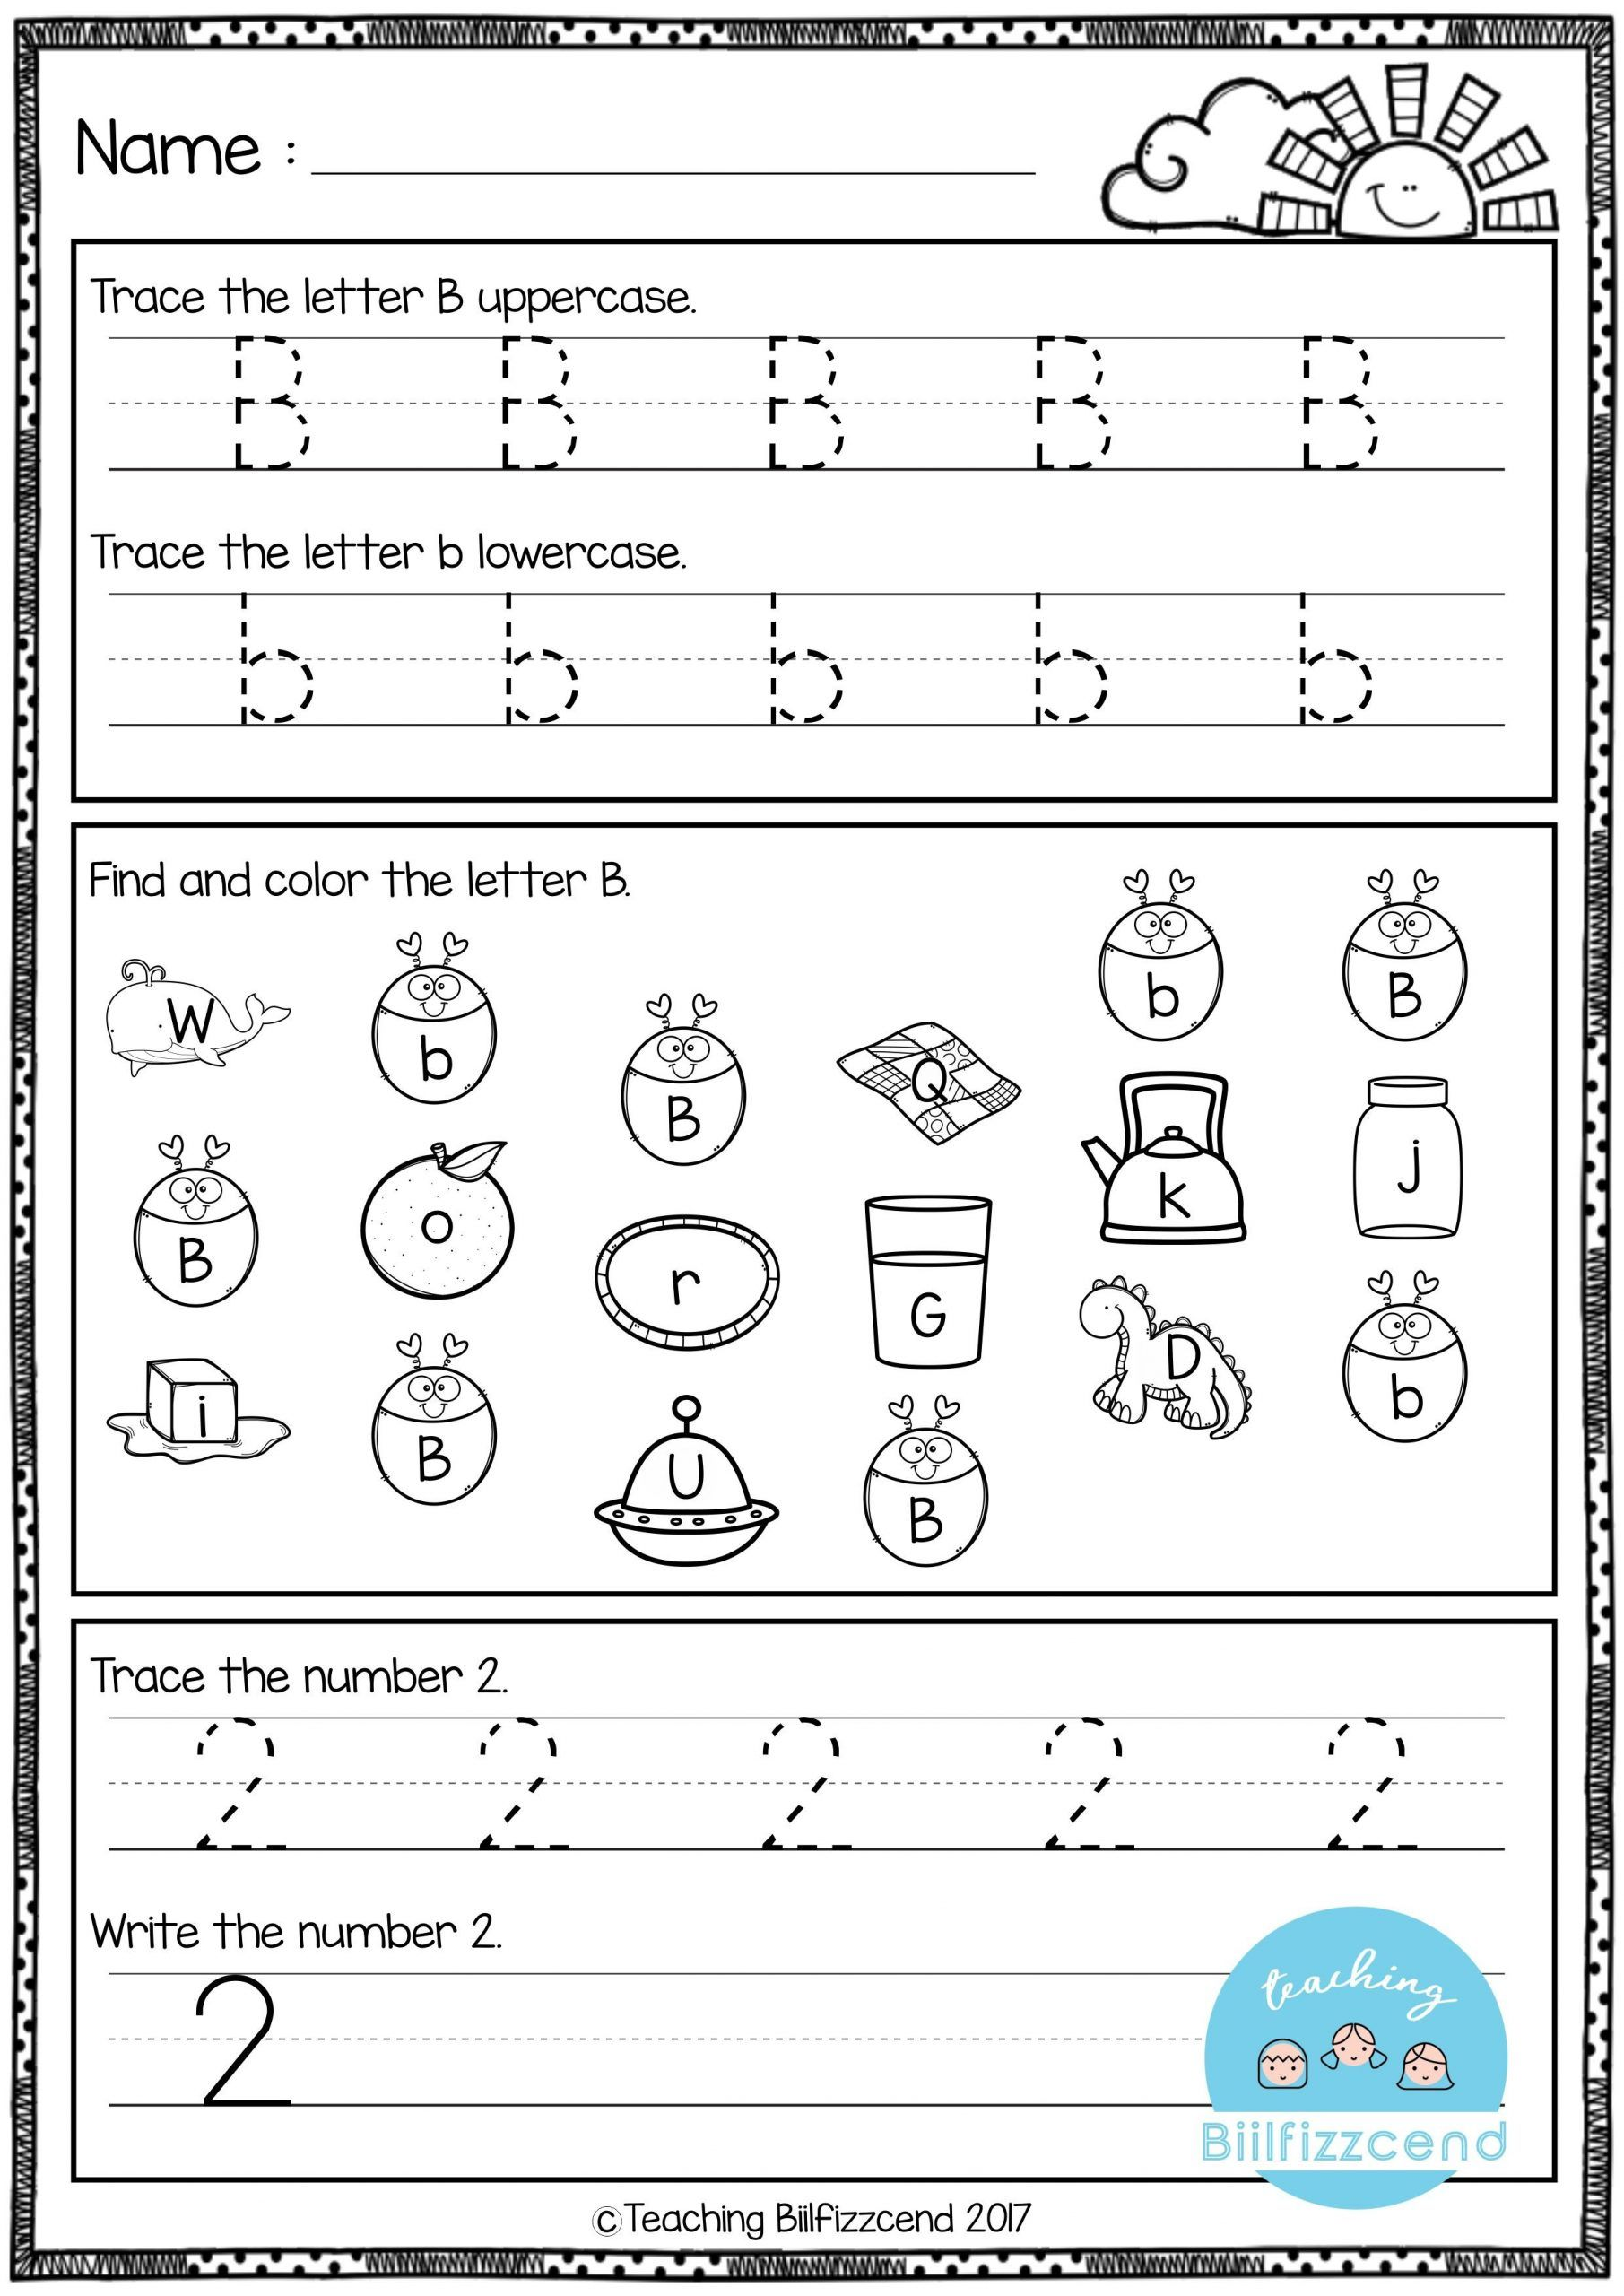 Pin On Printable Worksheets Template